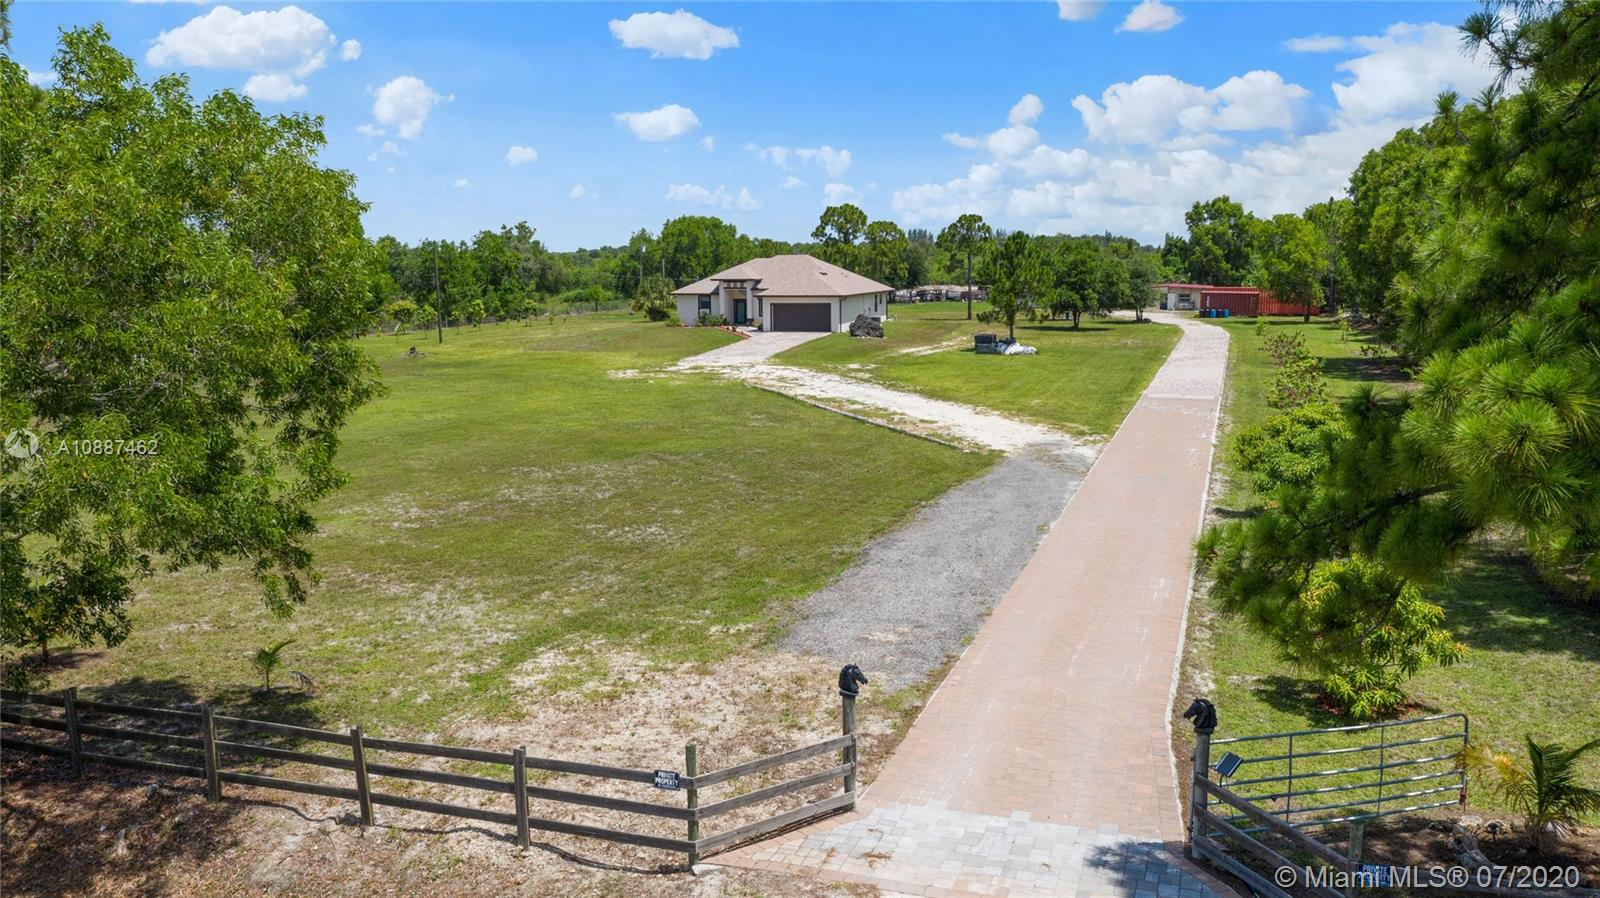 3401 Sand Rd Property Photo - Cape Coral, FL real estate listing